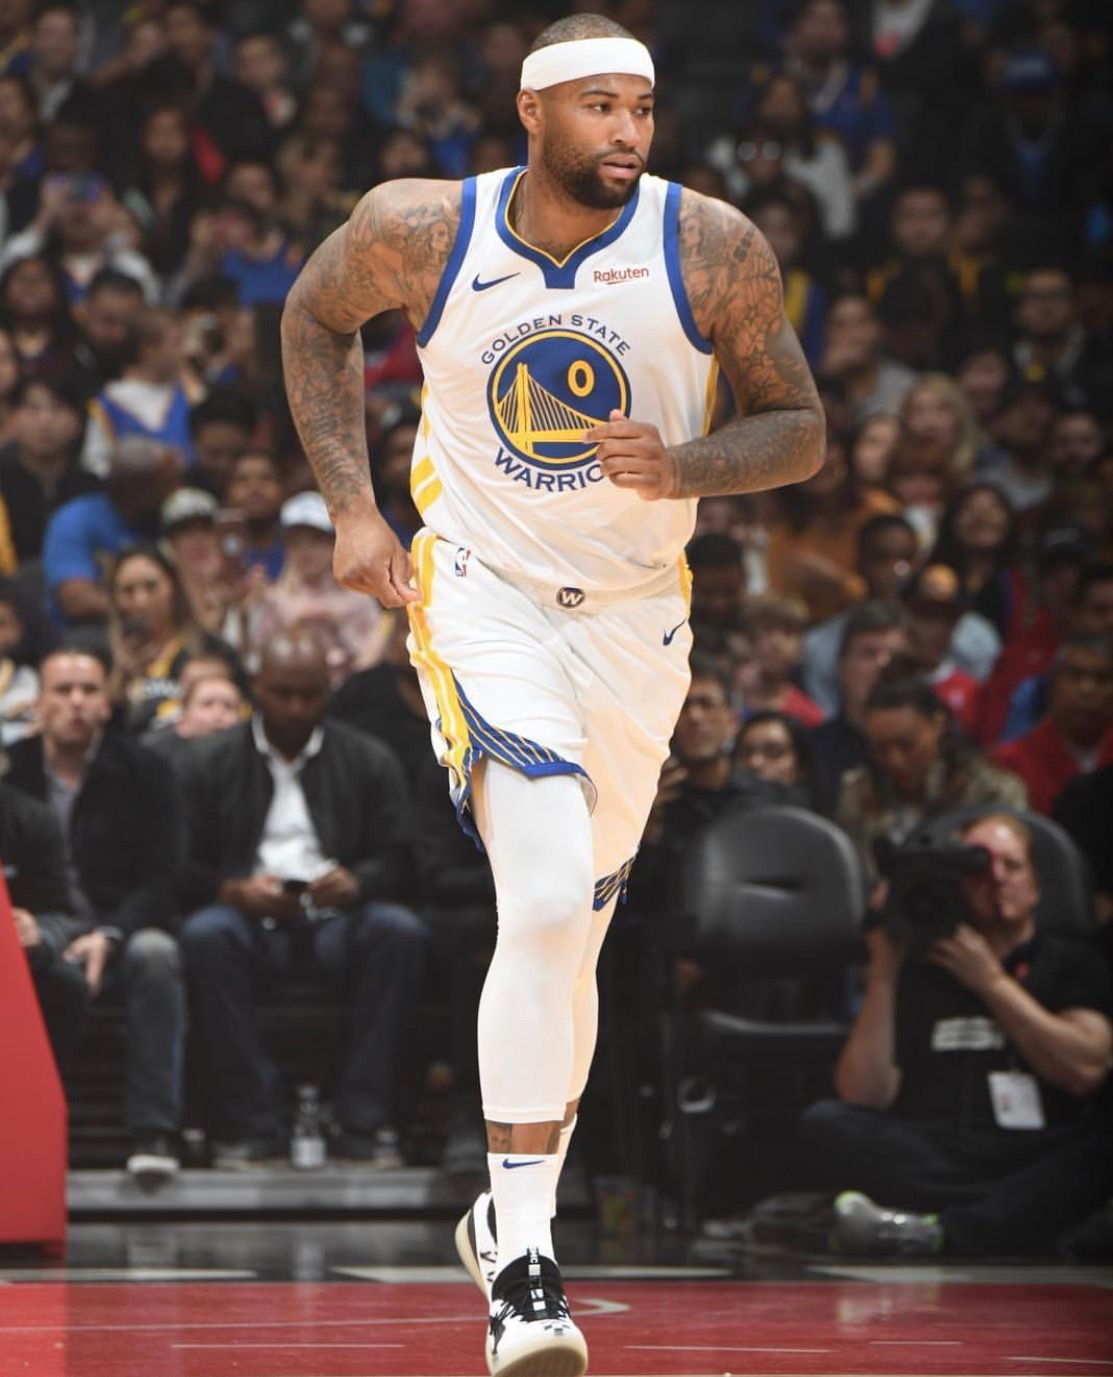 Los Angeles California 1 18 19 Demarcus Cousins Scored 14 Points In His Warriors Debut A 112 94 Victory Over The L Best Nba Jerseys Nba Fashion Nba Store